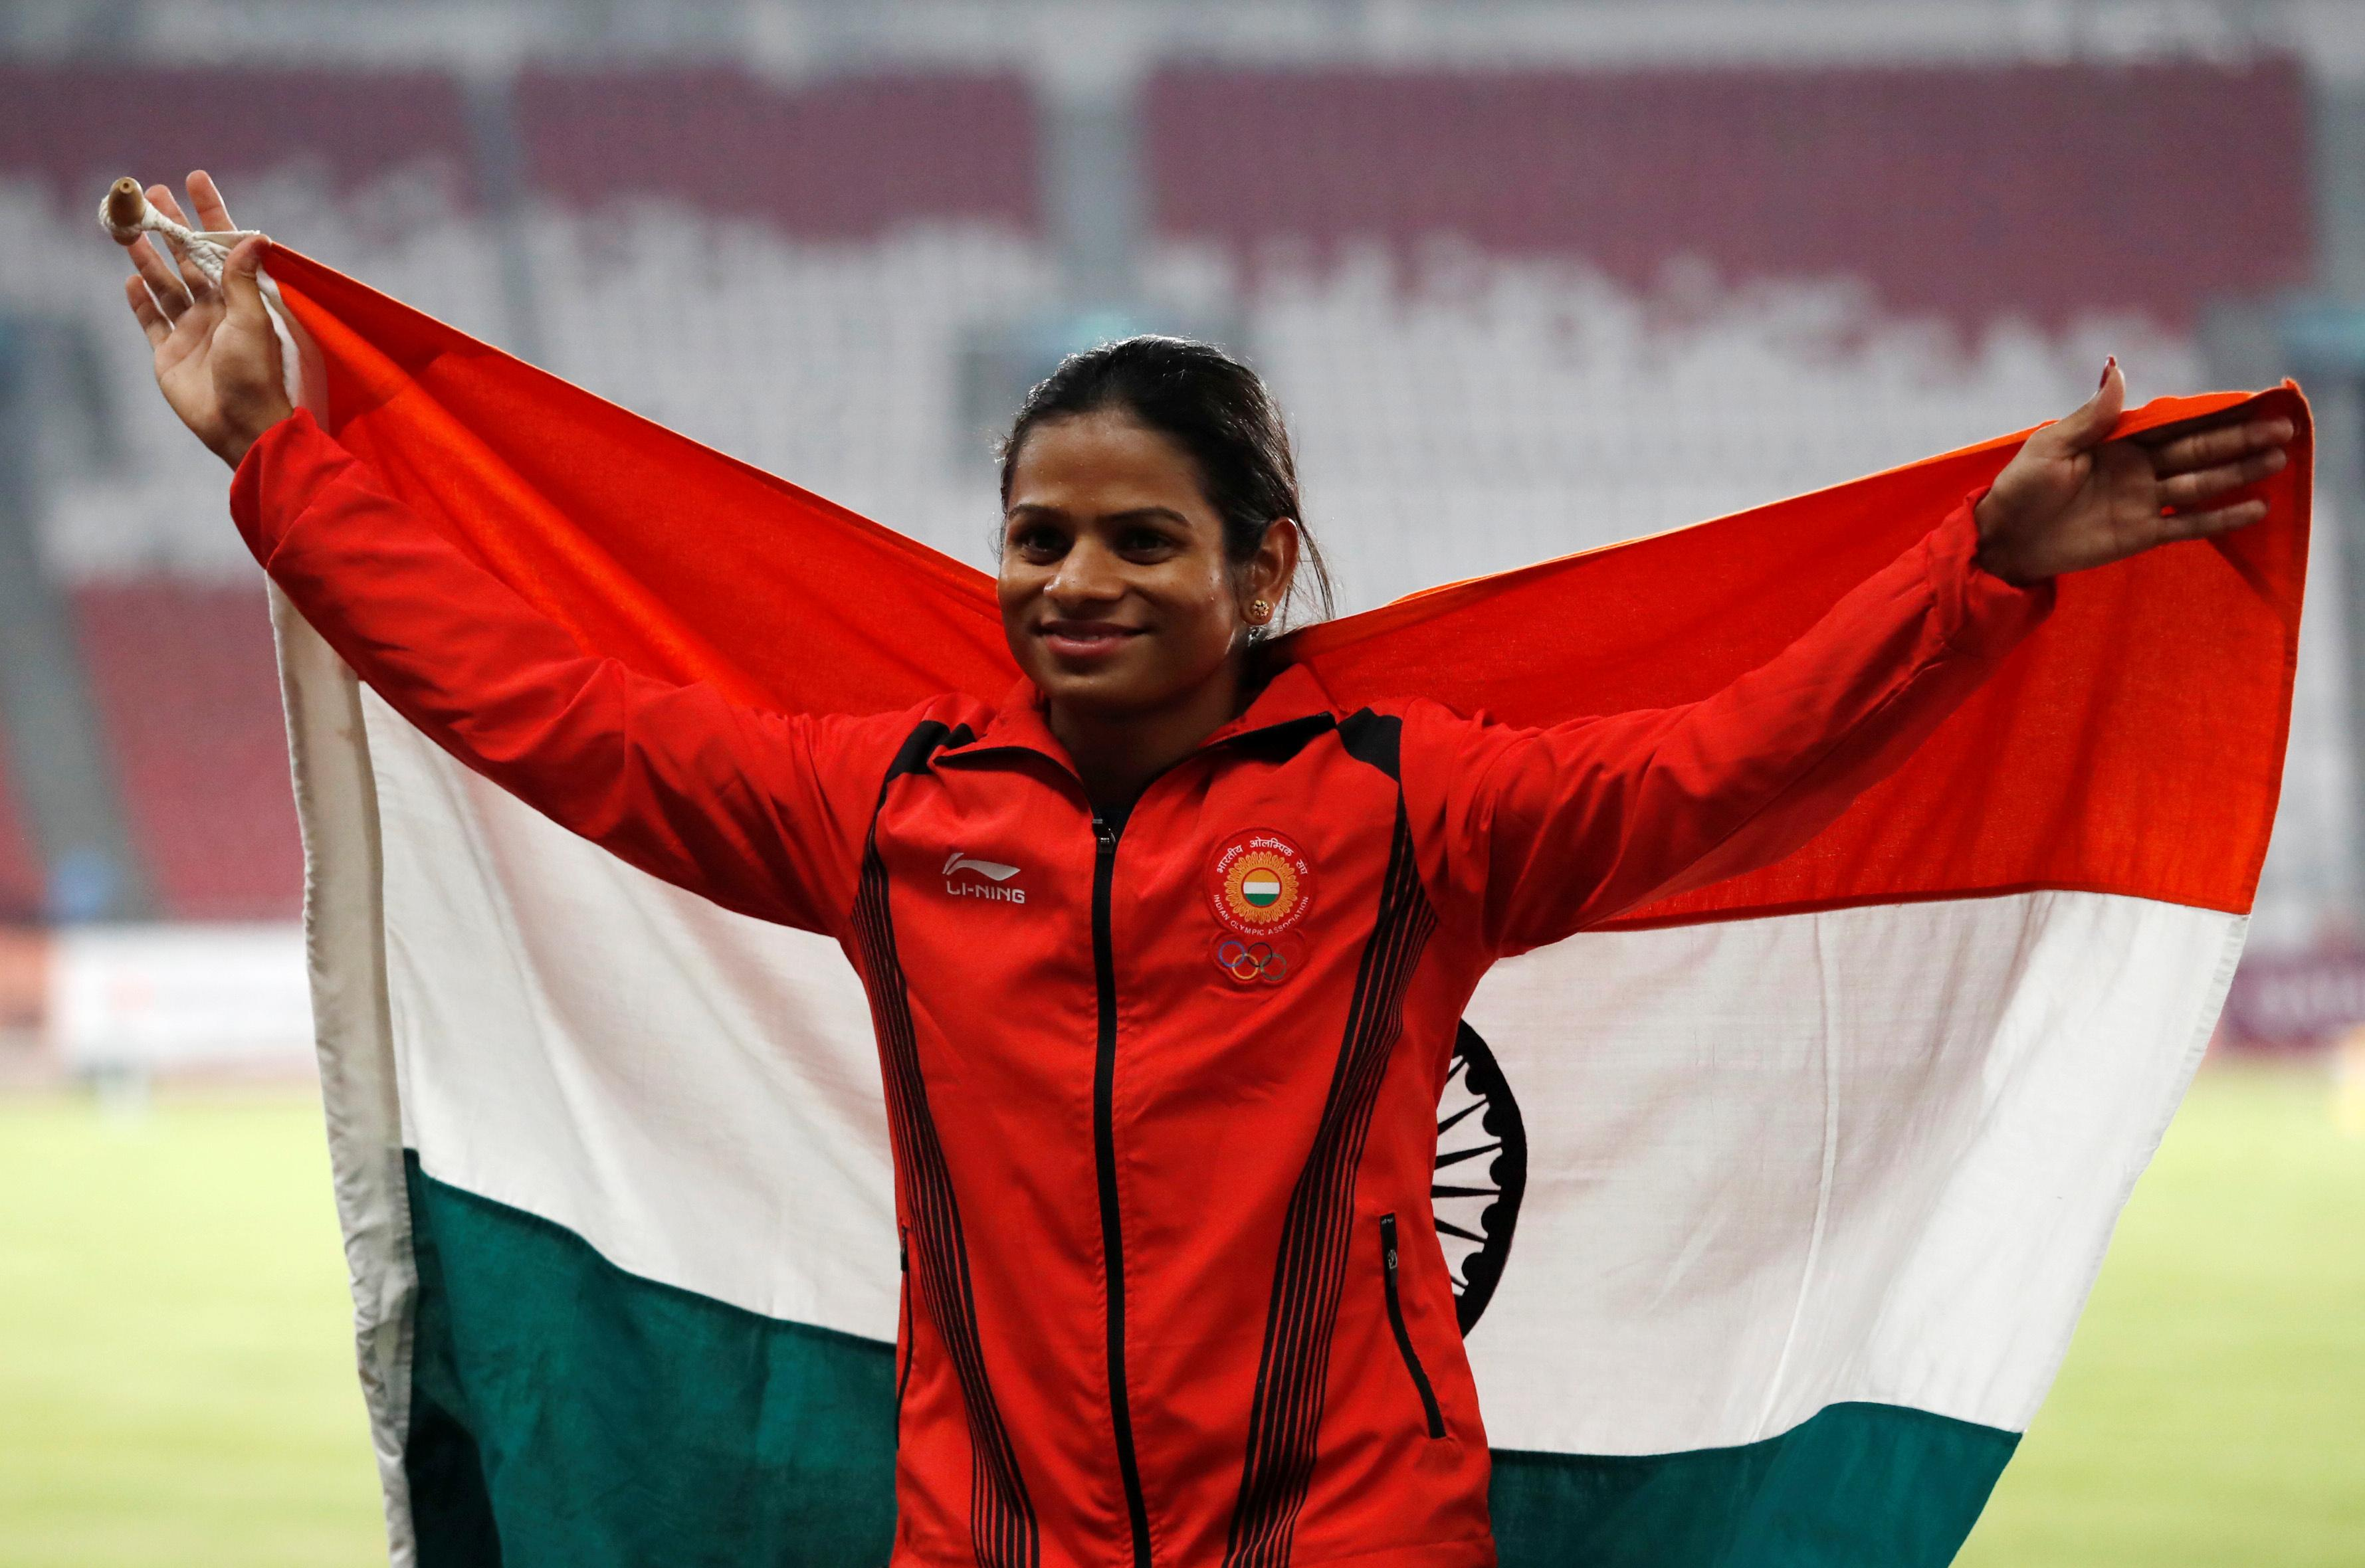 Athletics: Dutee Chand confident of making Olympic cut